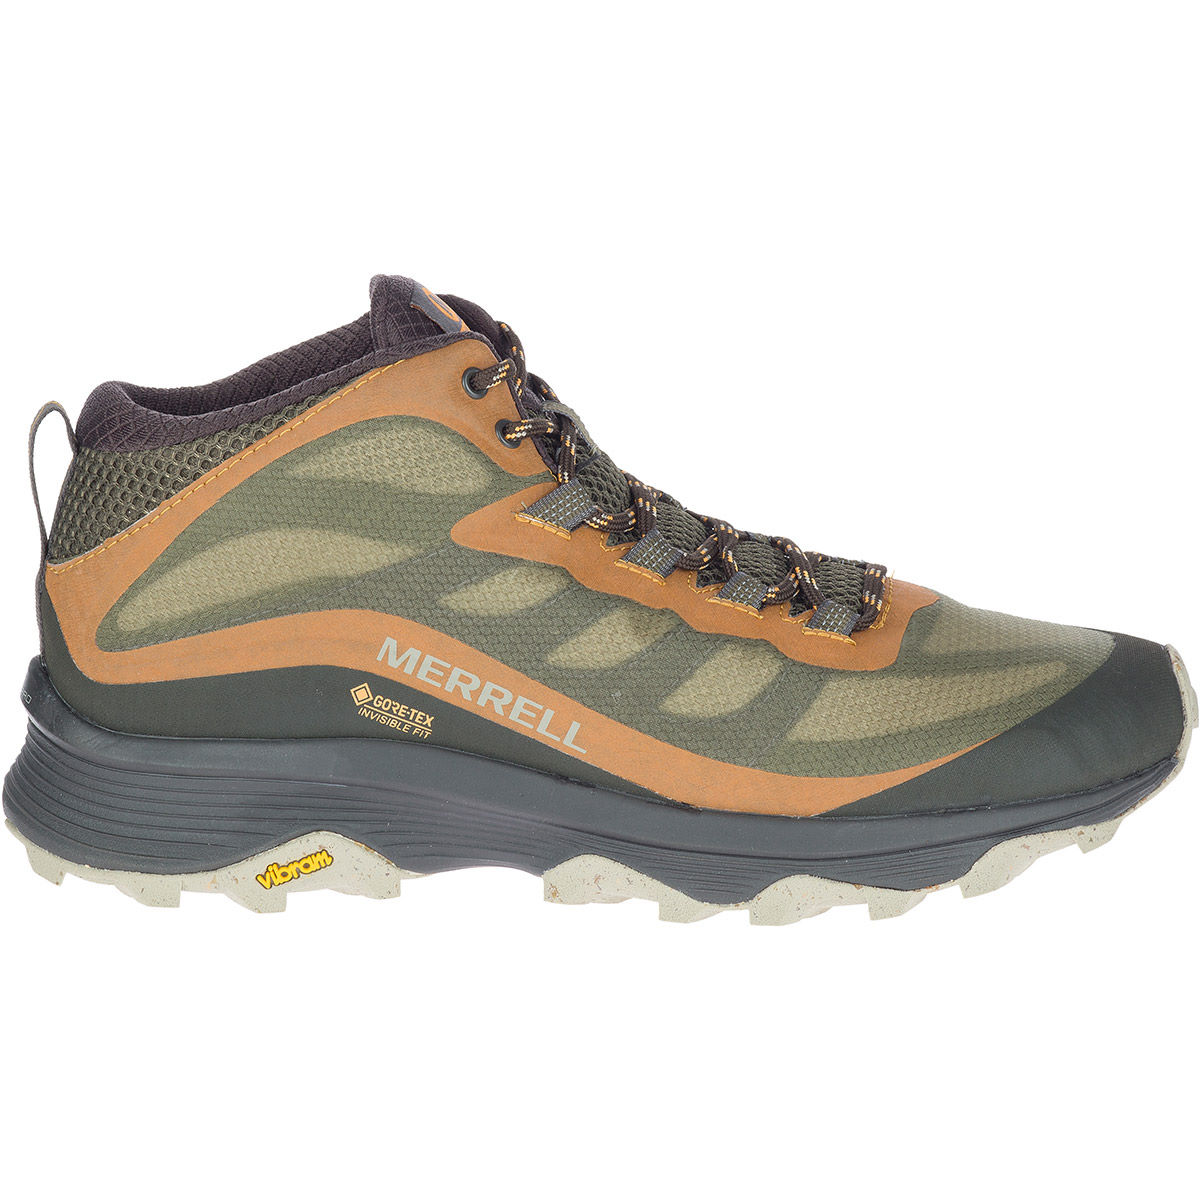 Merrell Moab Speed Mid Gore-tex Boots - Uk 10.5 Lichen  Boots